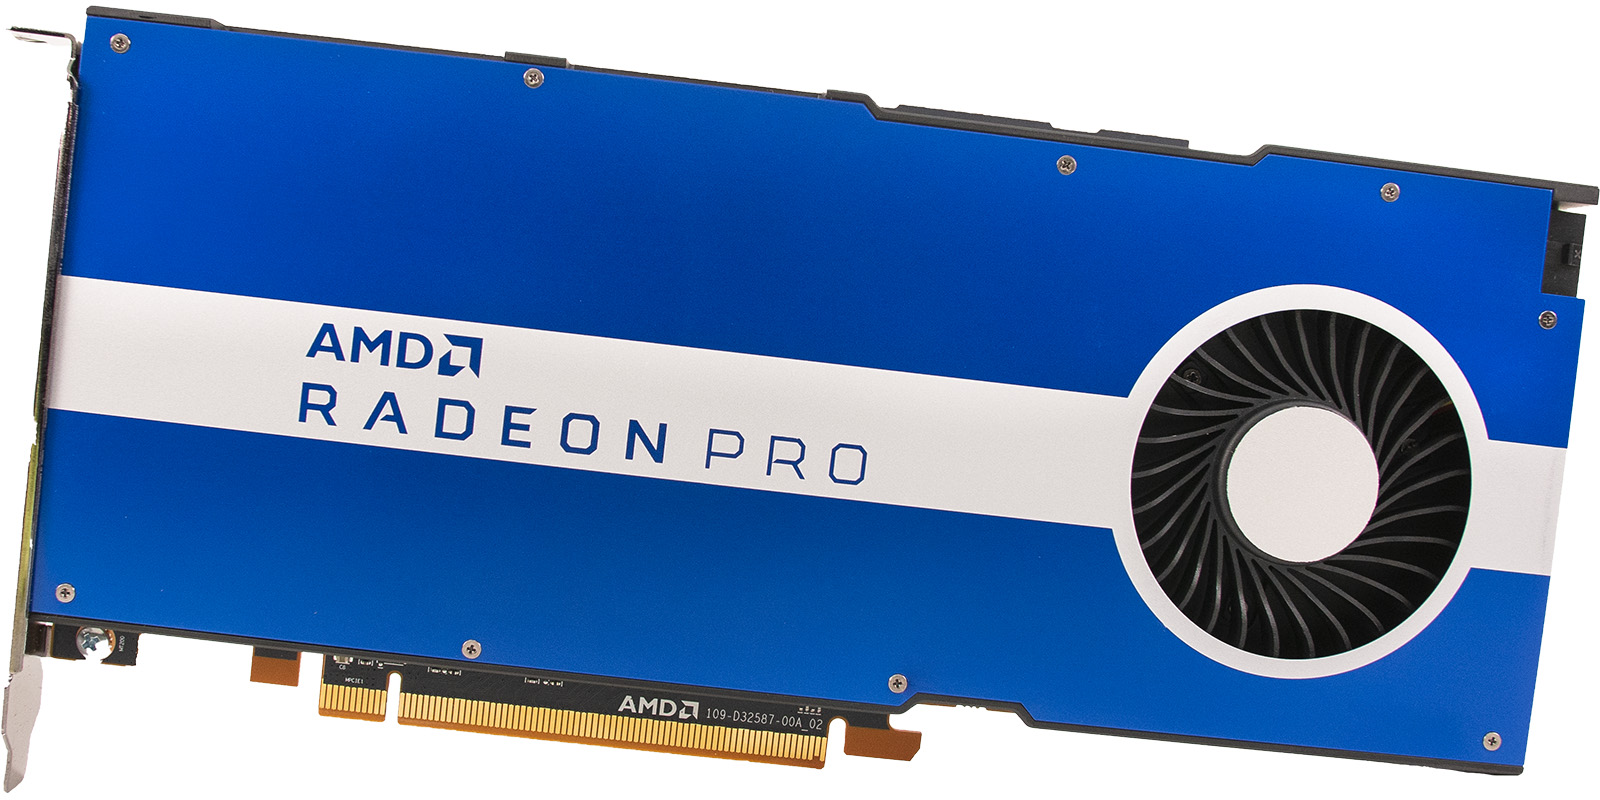 AMD Radeon Pro W5500 Workstation Graphics Card